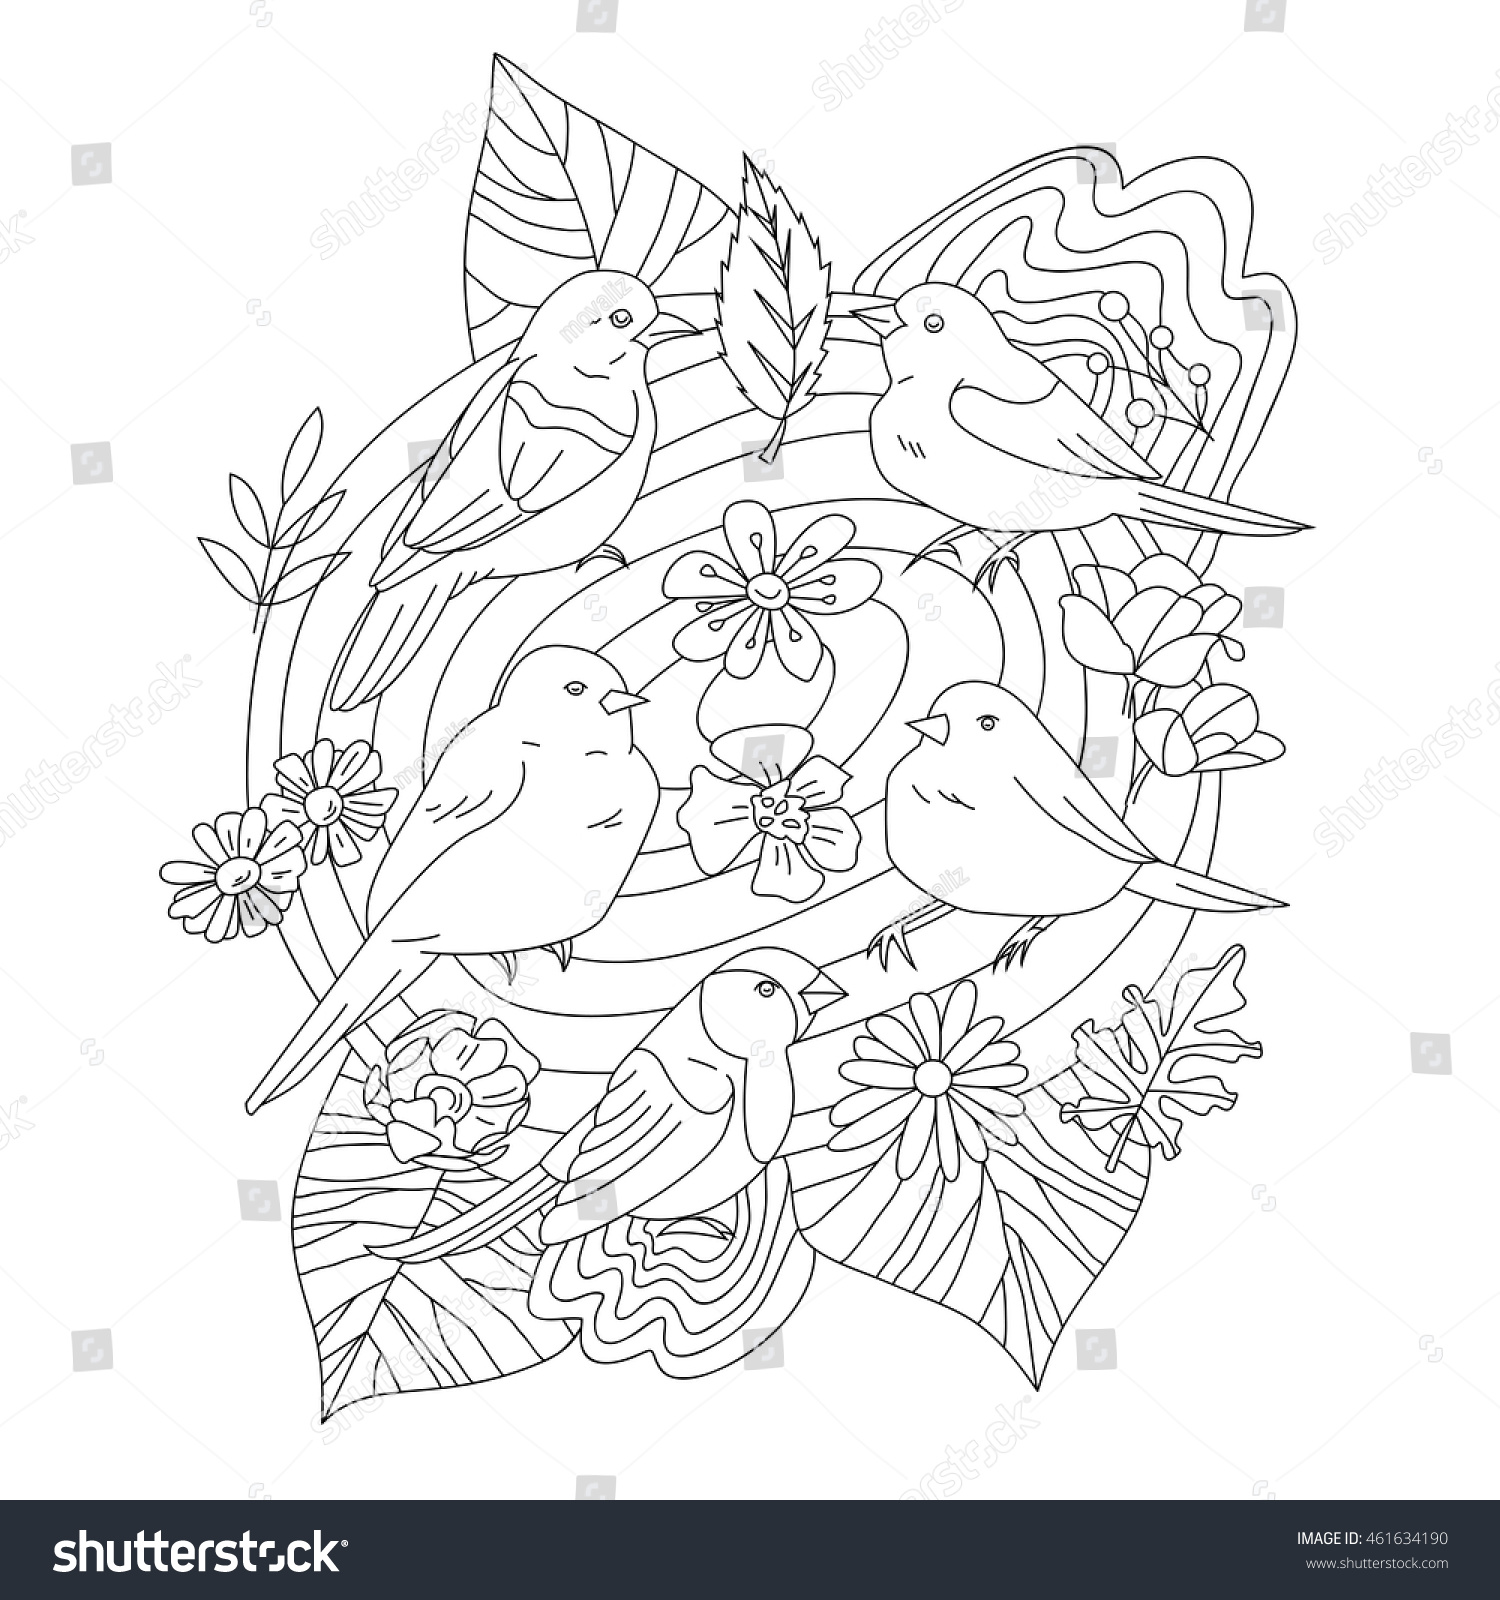 Coloring book outlines - Vector Outlines For Adult Coloring Book Page Cute Birds In Nest With Leaves And Flowers